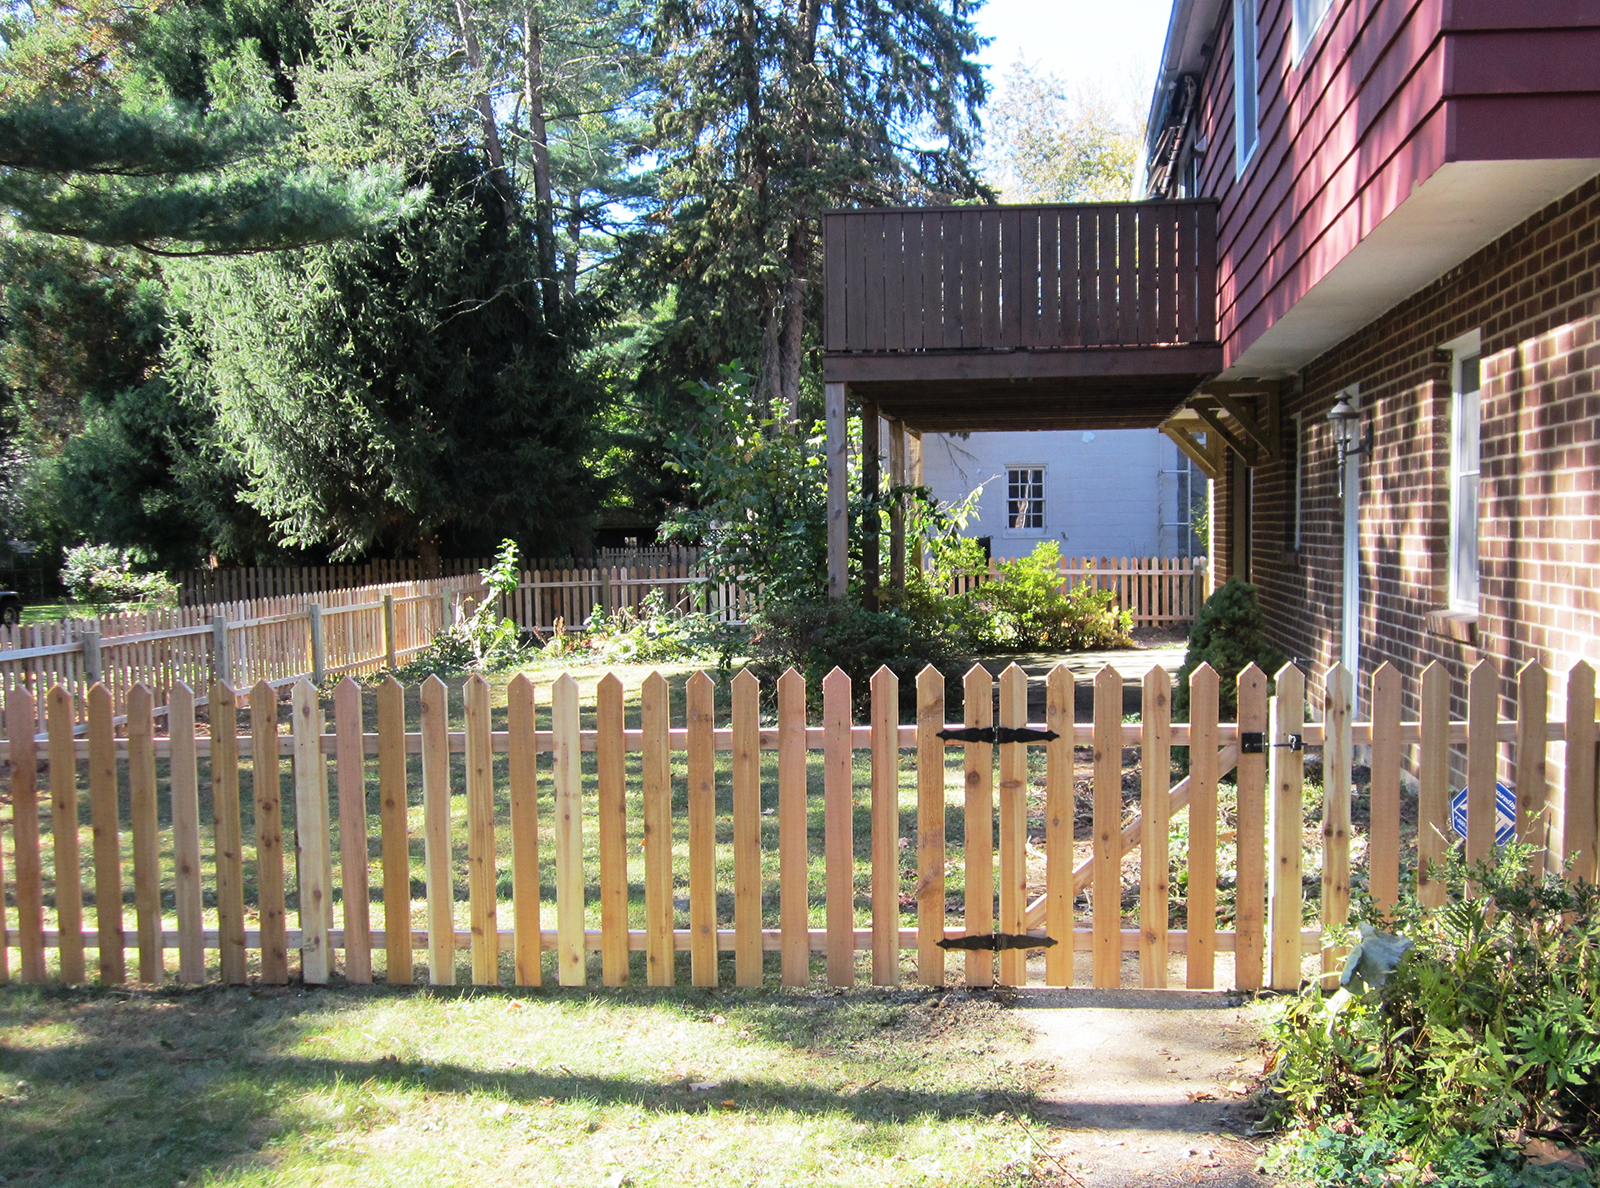 wood picket fence with gate around yard